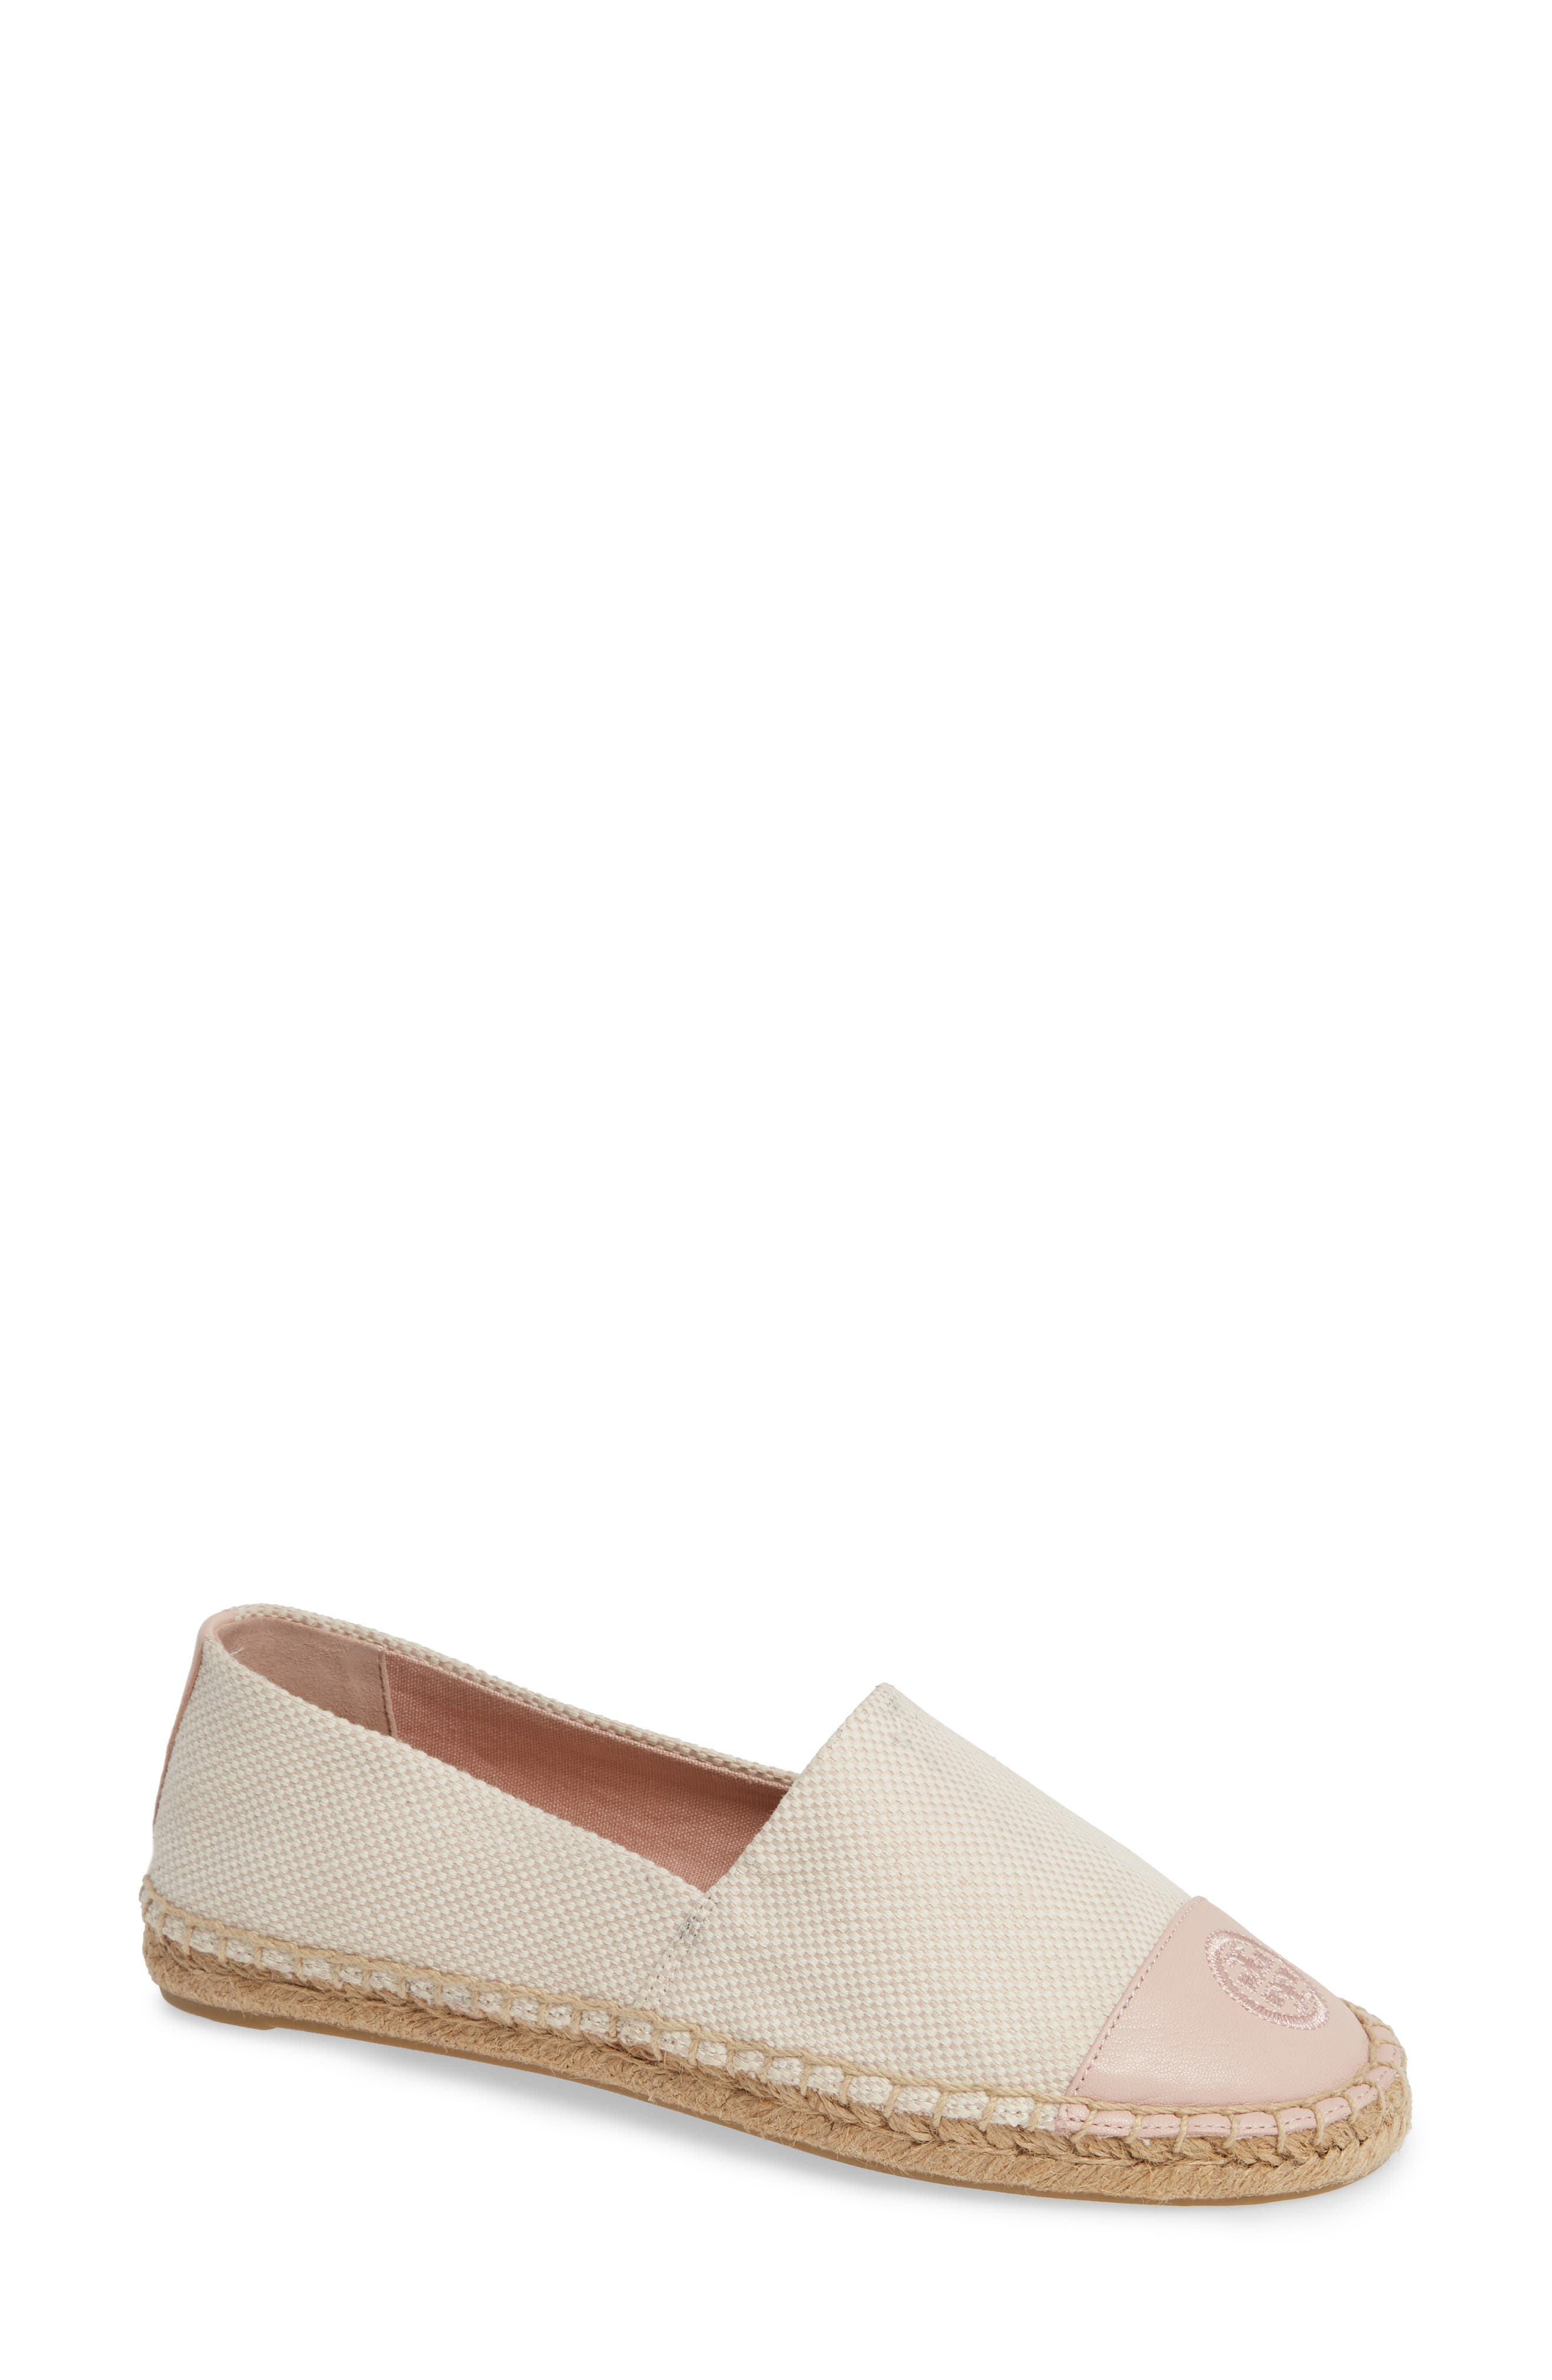 Women'S Color Block Leather & Canvas Espadrille Flats in Sea Shell Pink